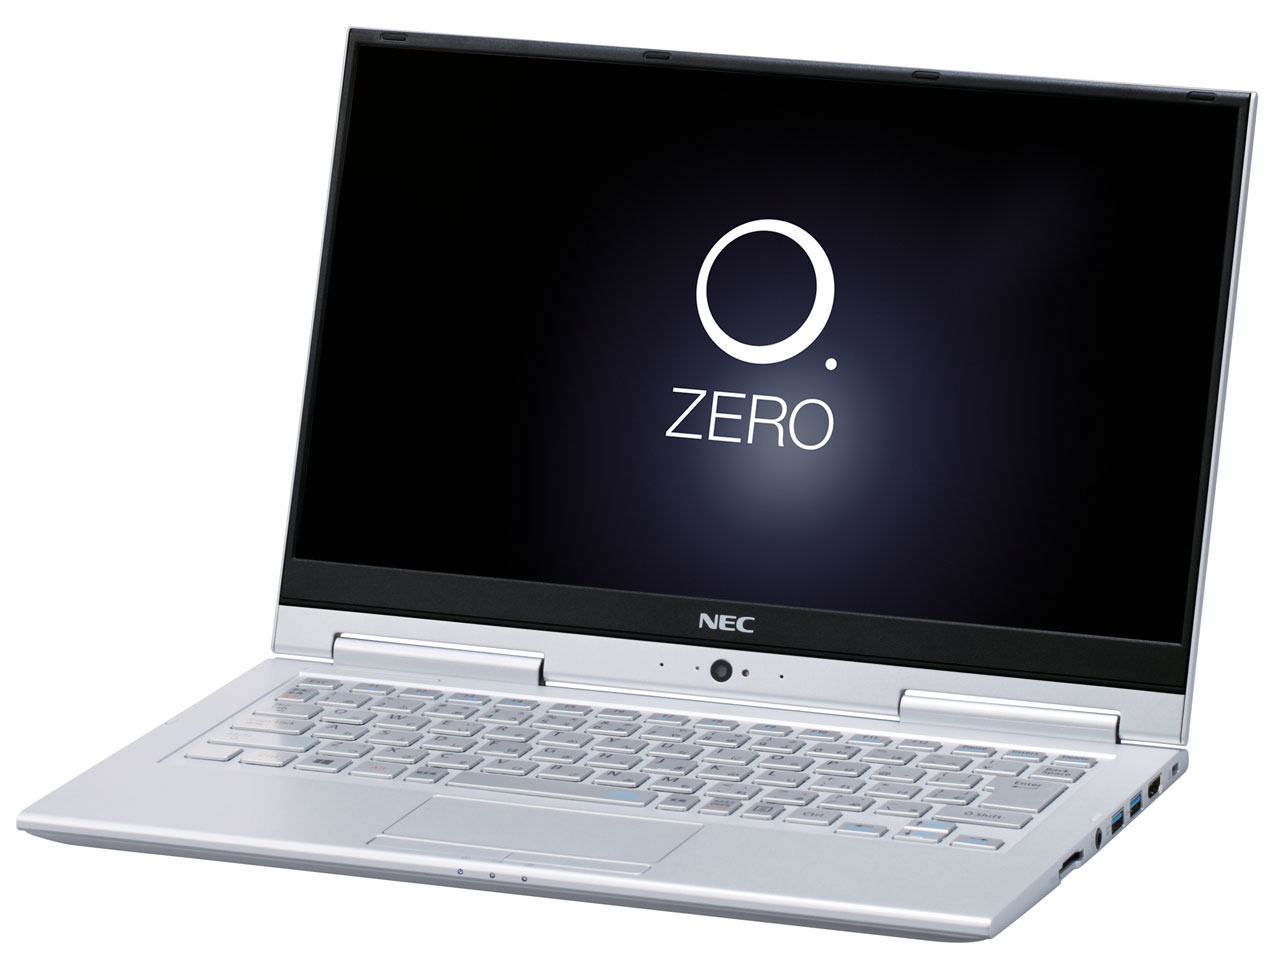 LAVIE Hybrid ZERO HZ550/GAS PC-HZ550GAS [ムーンシルバー]